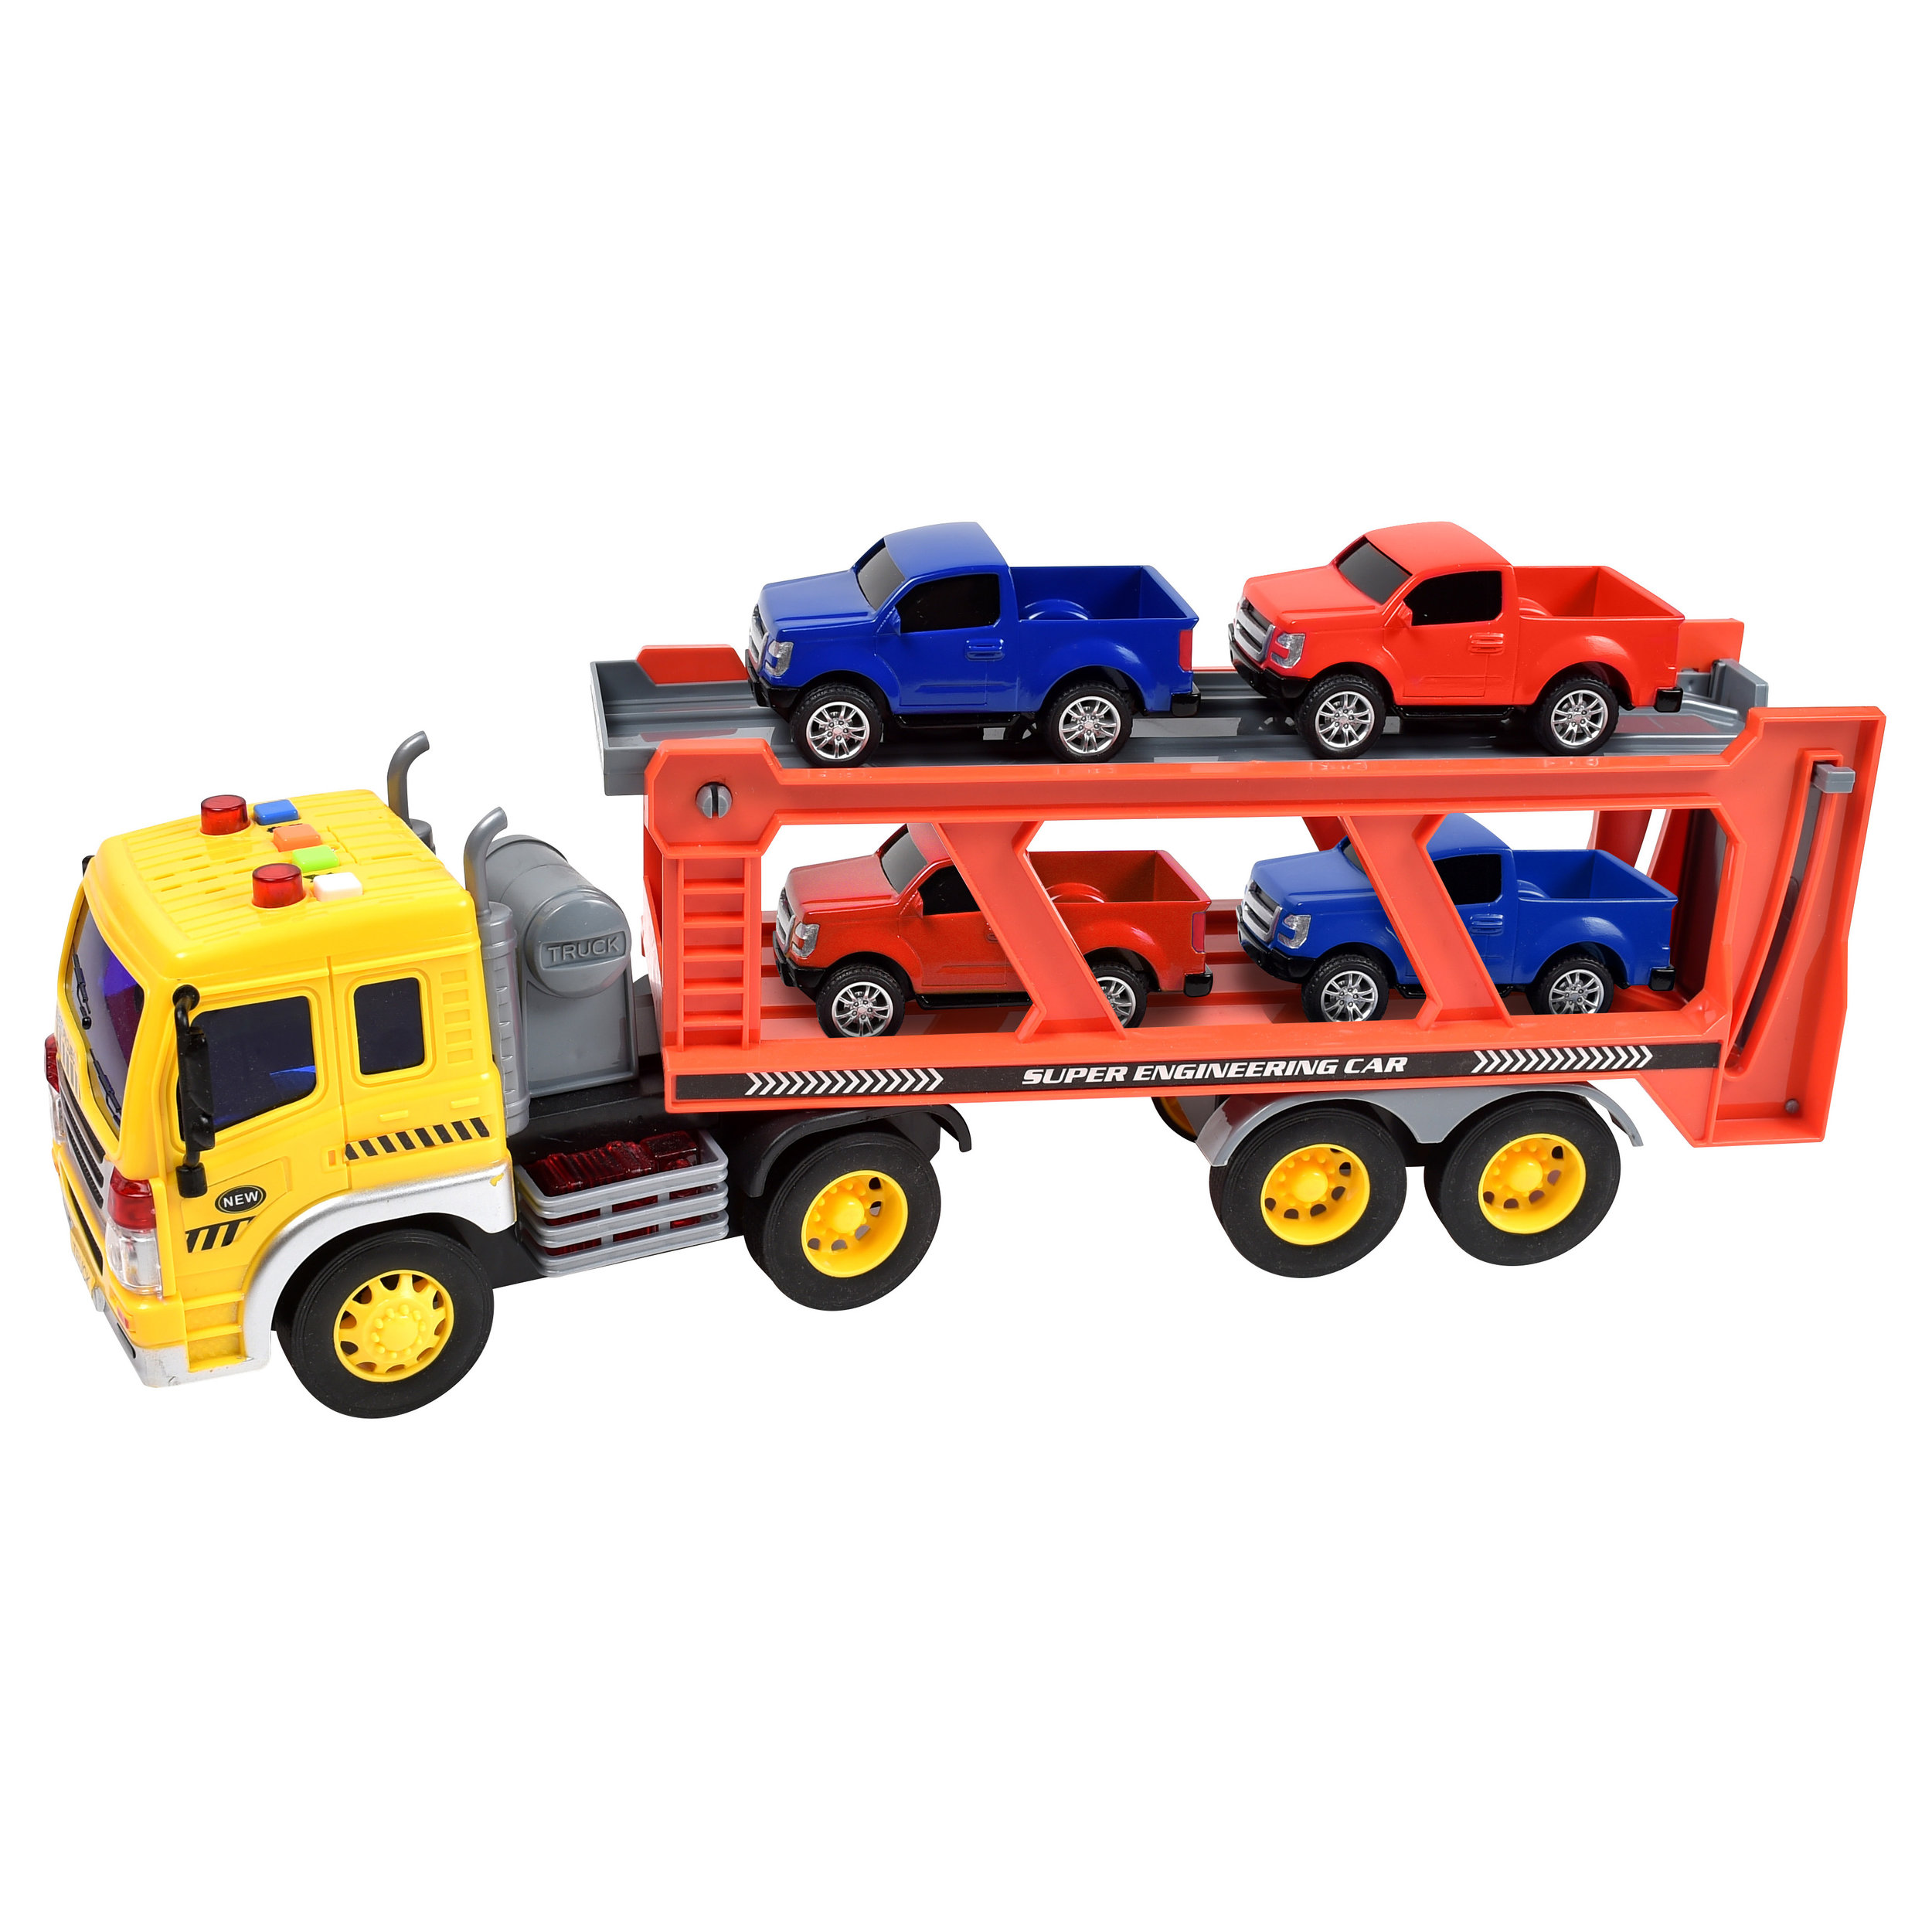 Maxx Action Long-Haul Vehicle Transport Playset